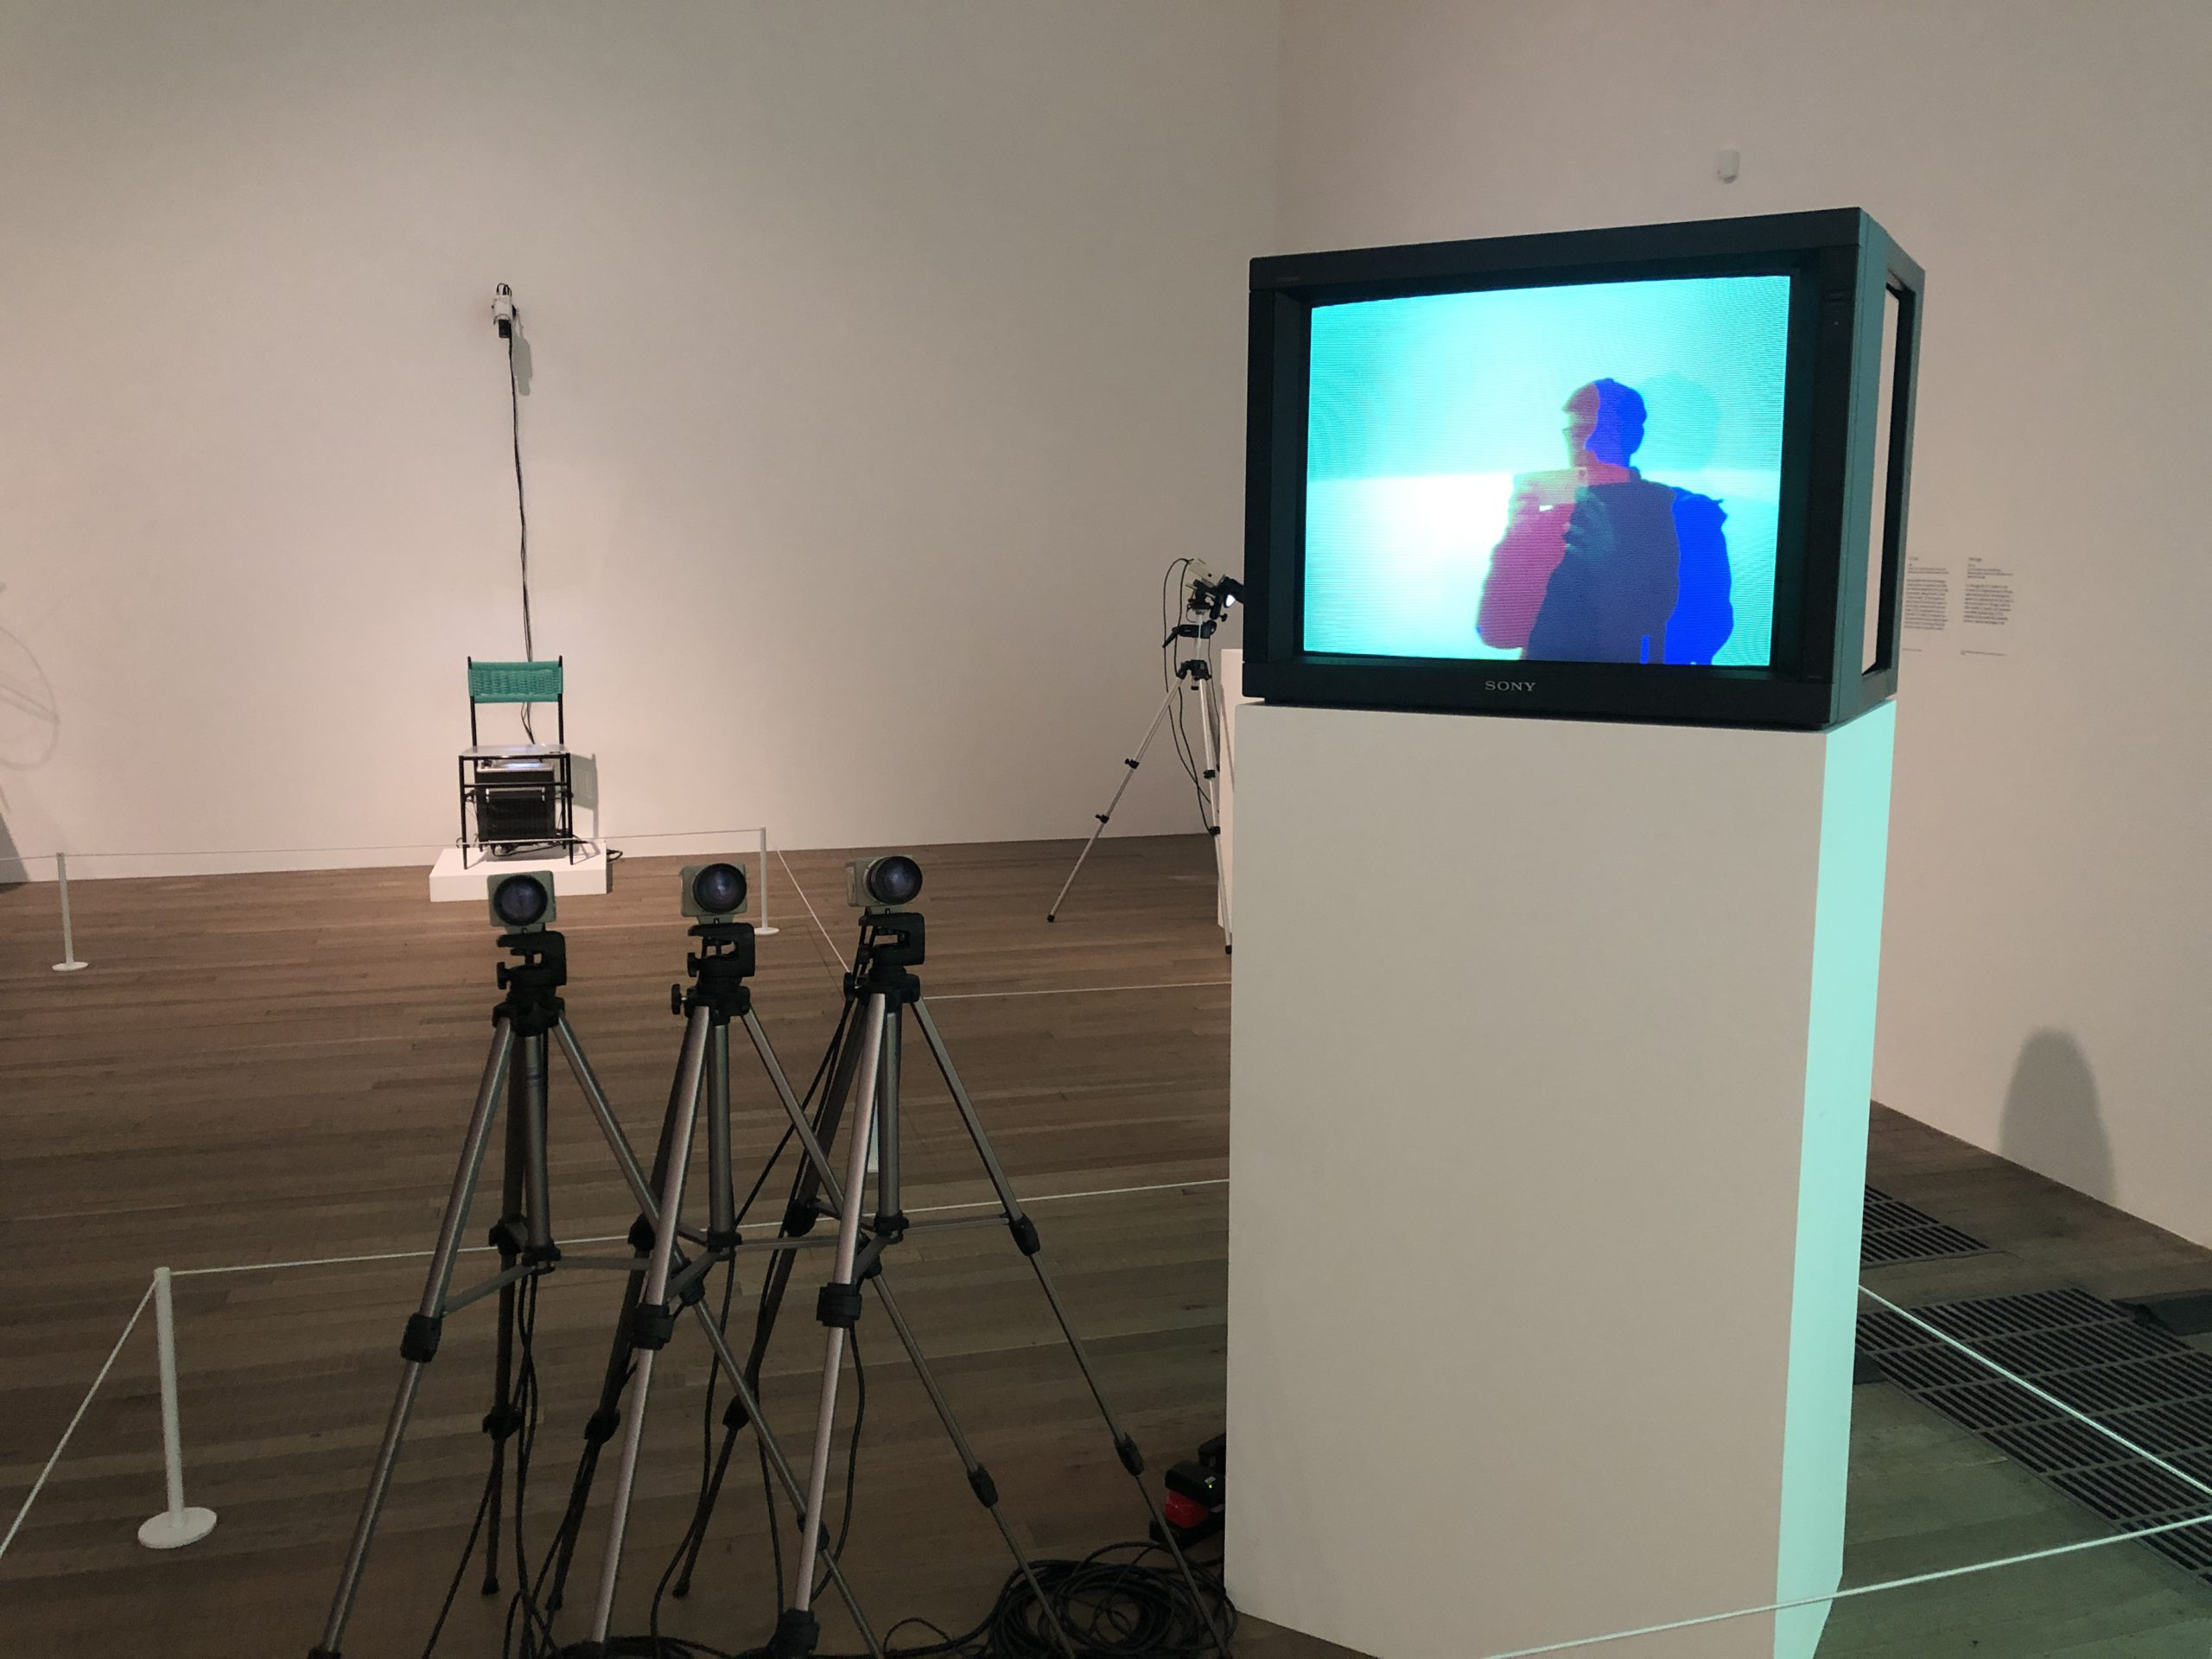 Installation image from Nam June Paik retrospective at the Tate Modern 2020